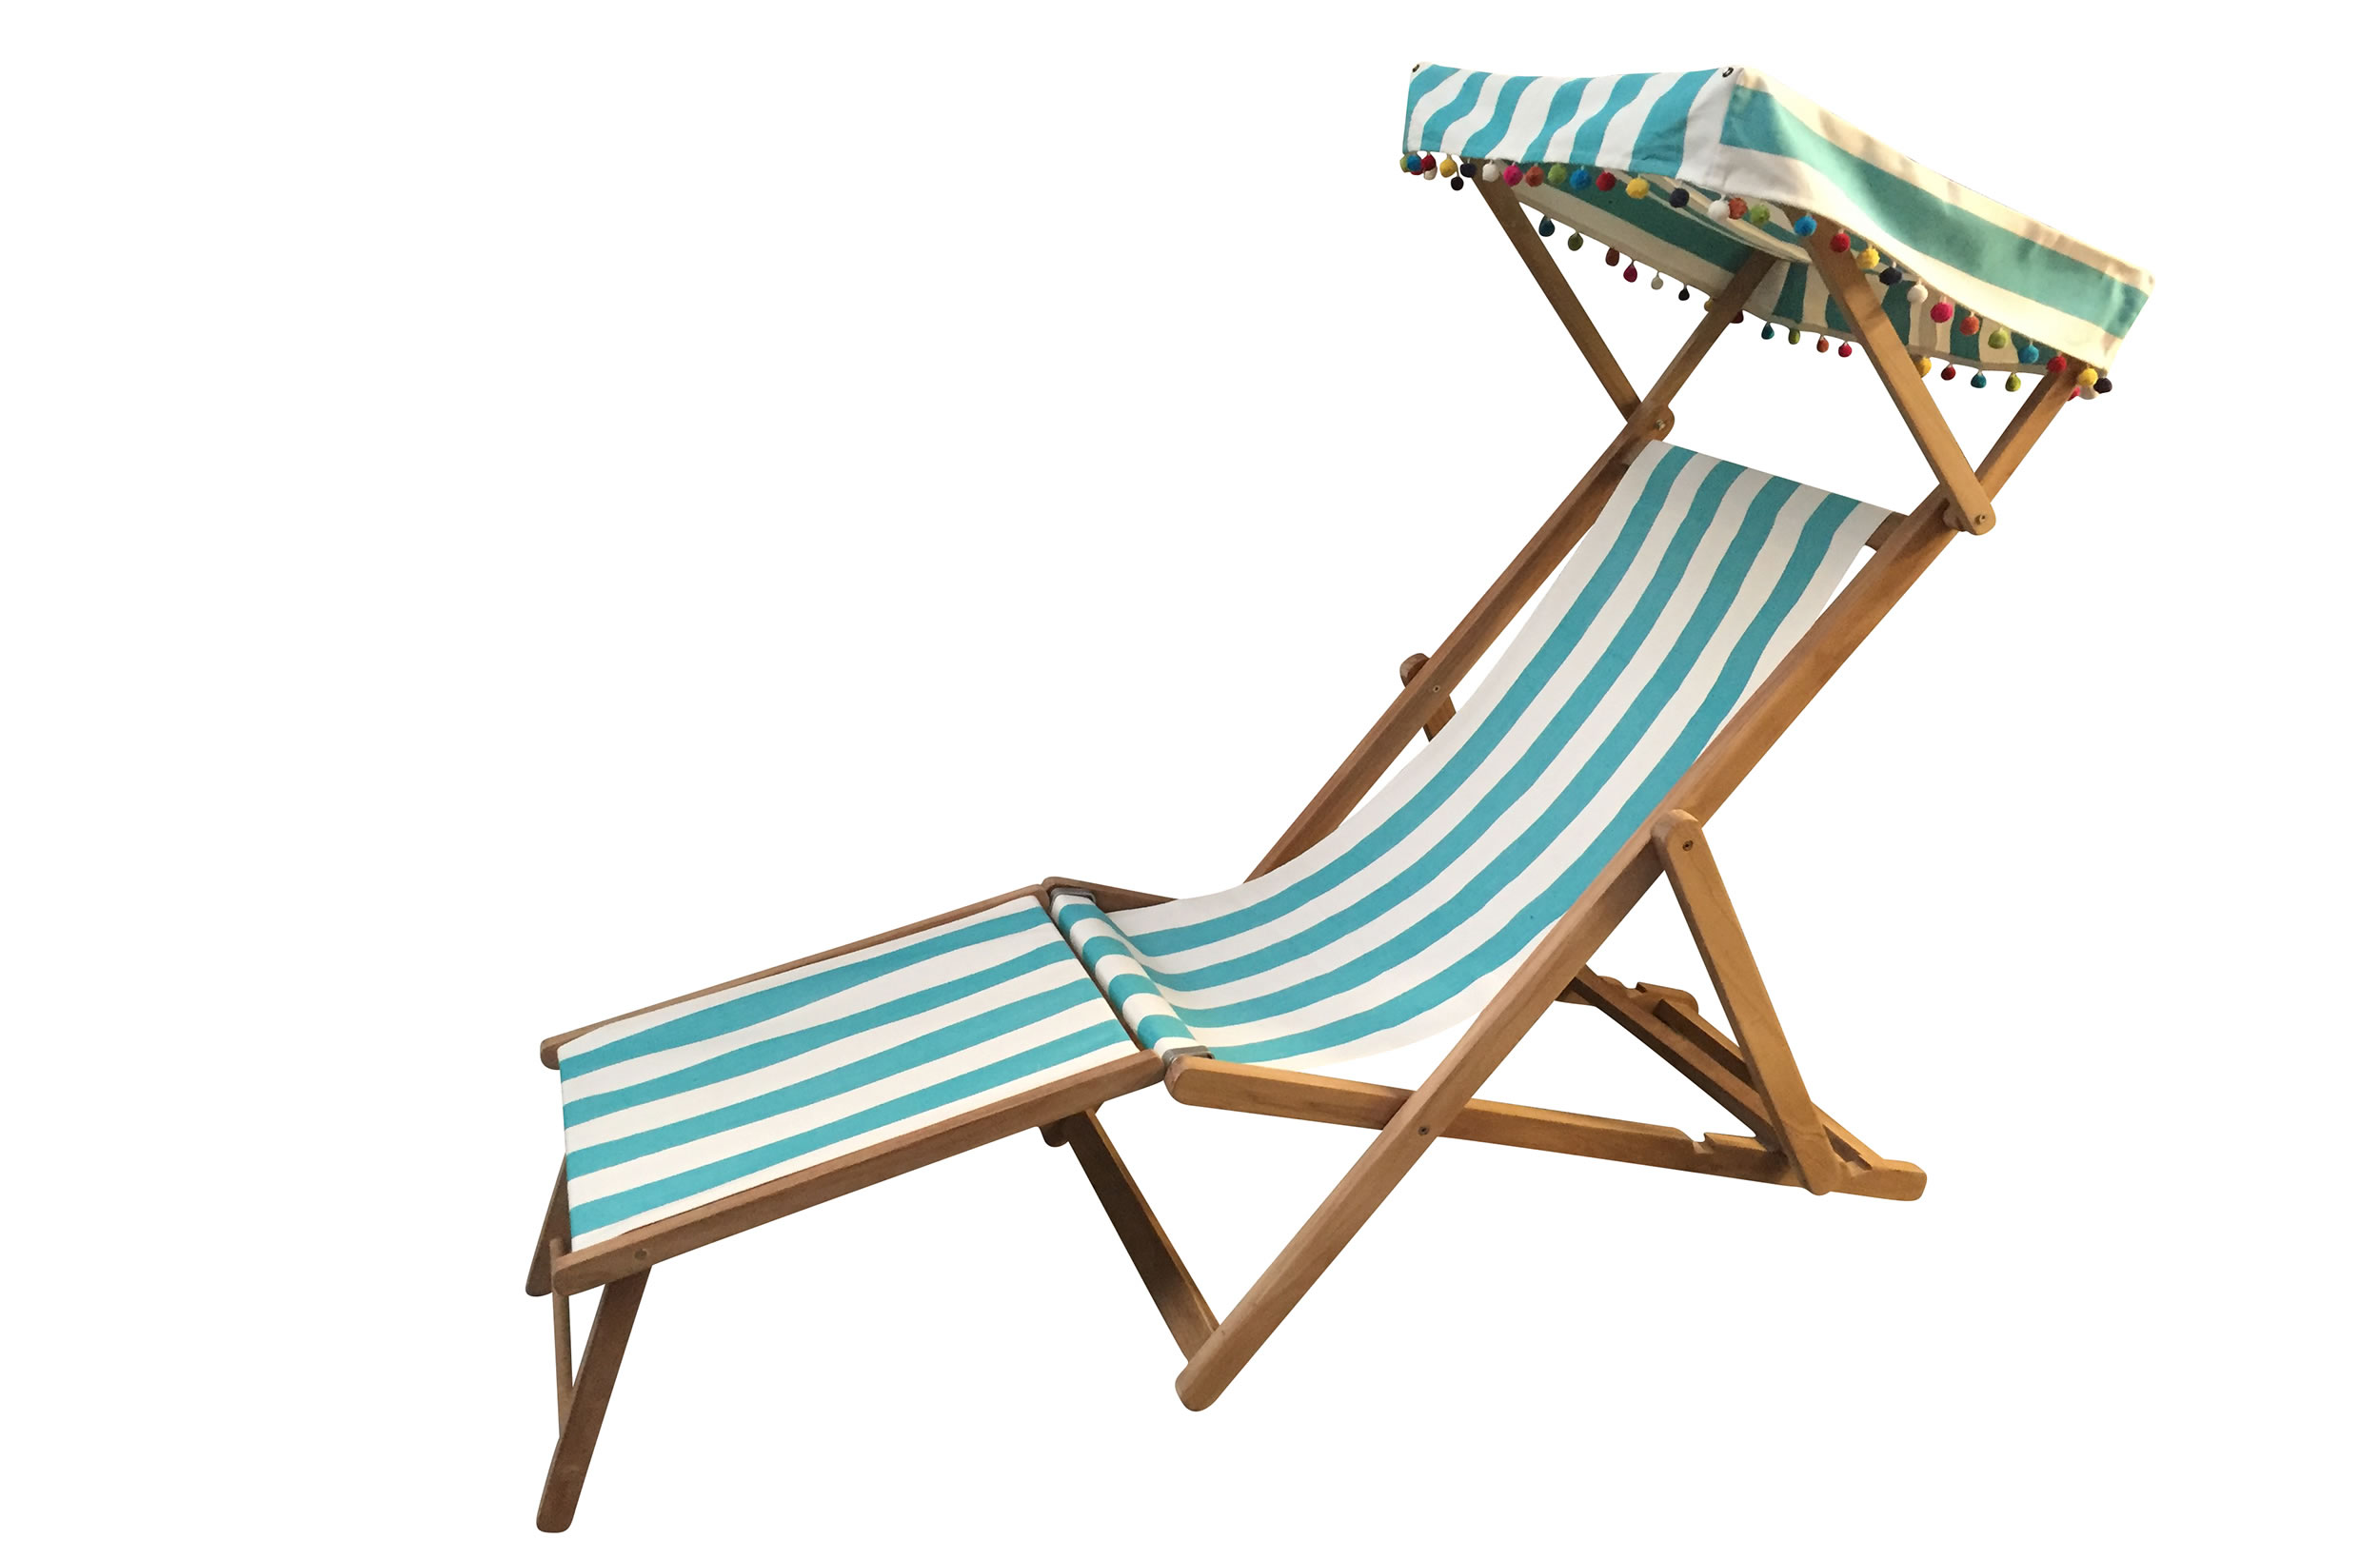 Turquoise and White Striped Edwardian Deckchairs with Canopy and Footstool